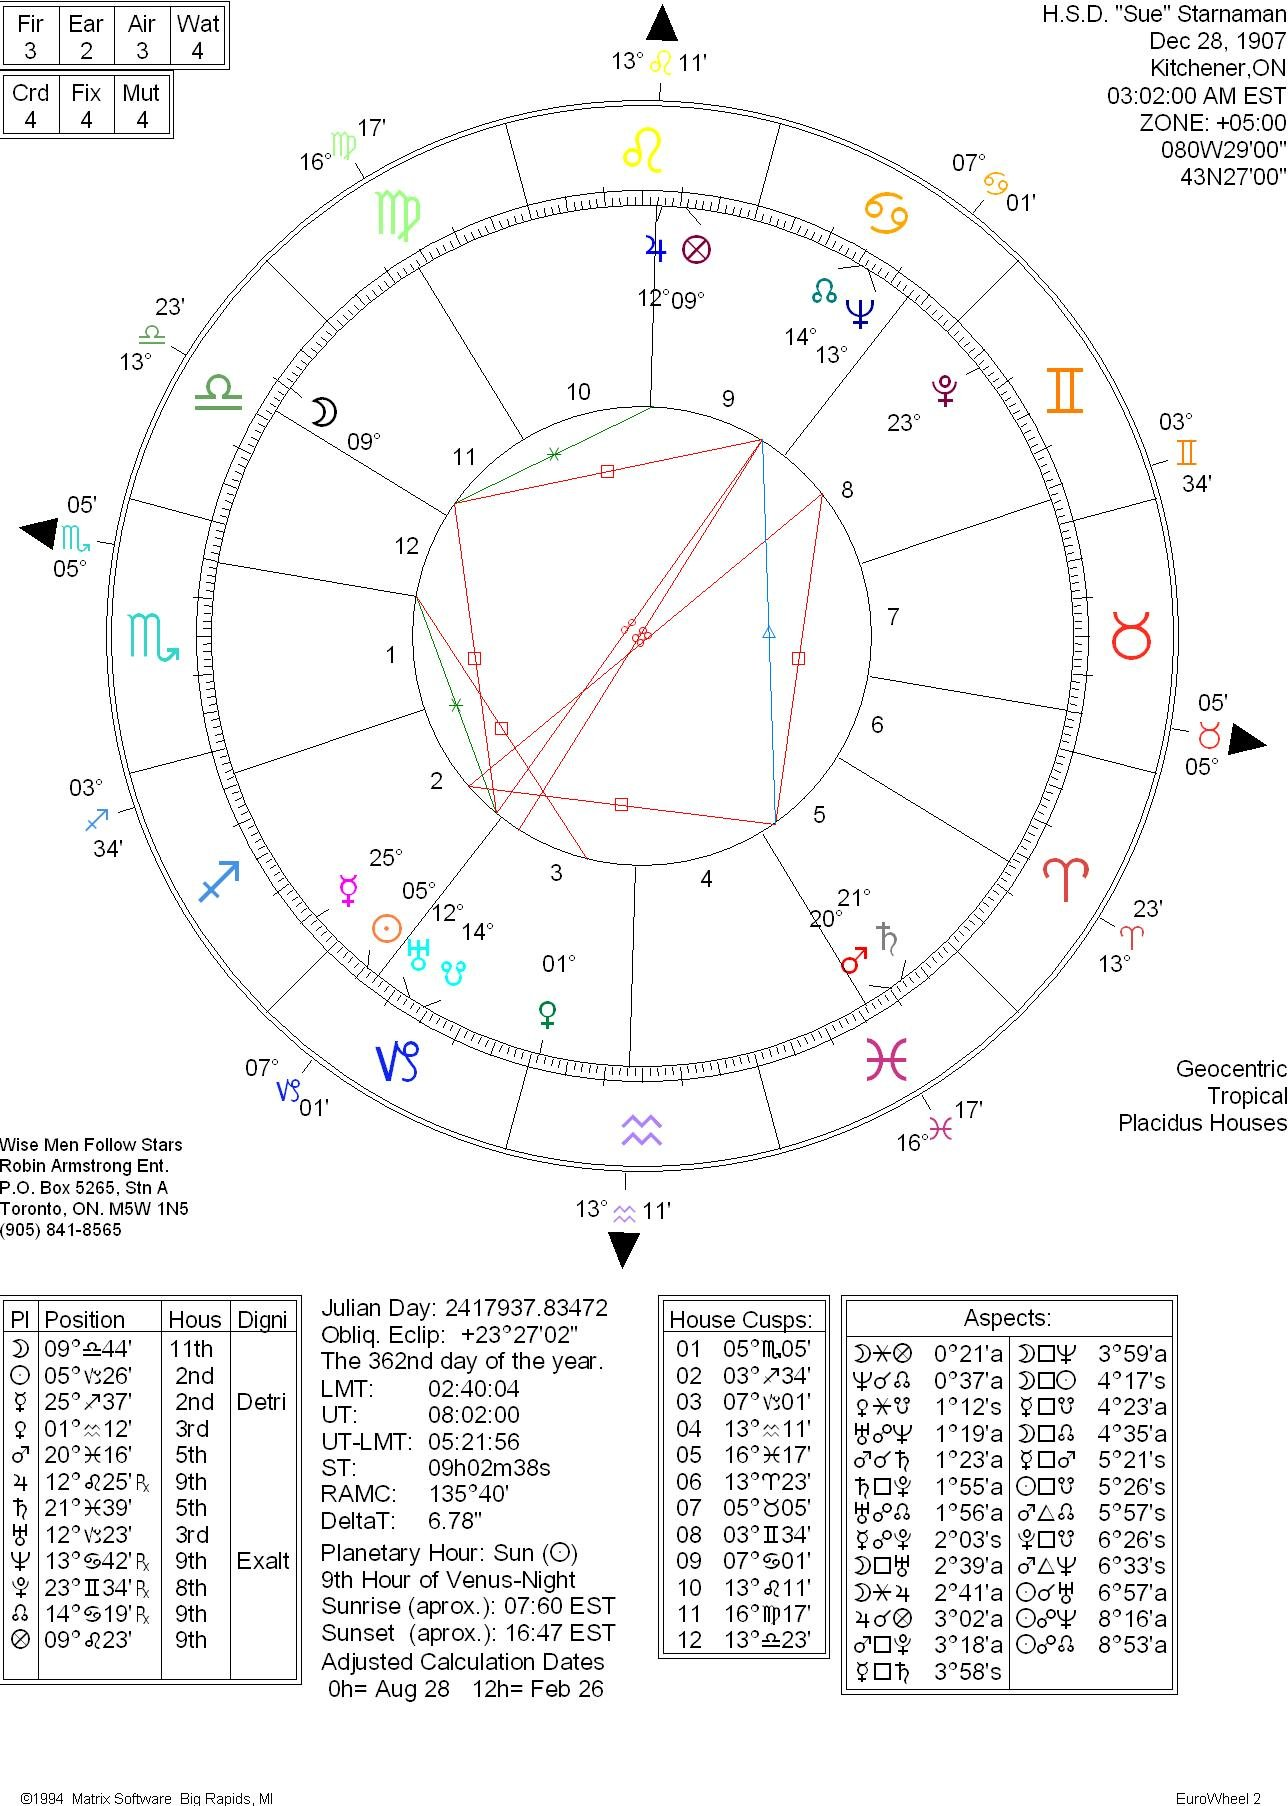 Nbdv1-4-010b-Horoscope Of Sue Starnaman